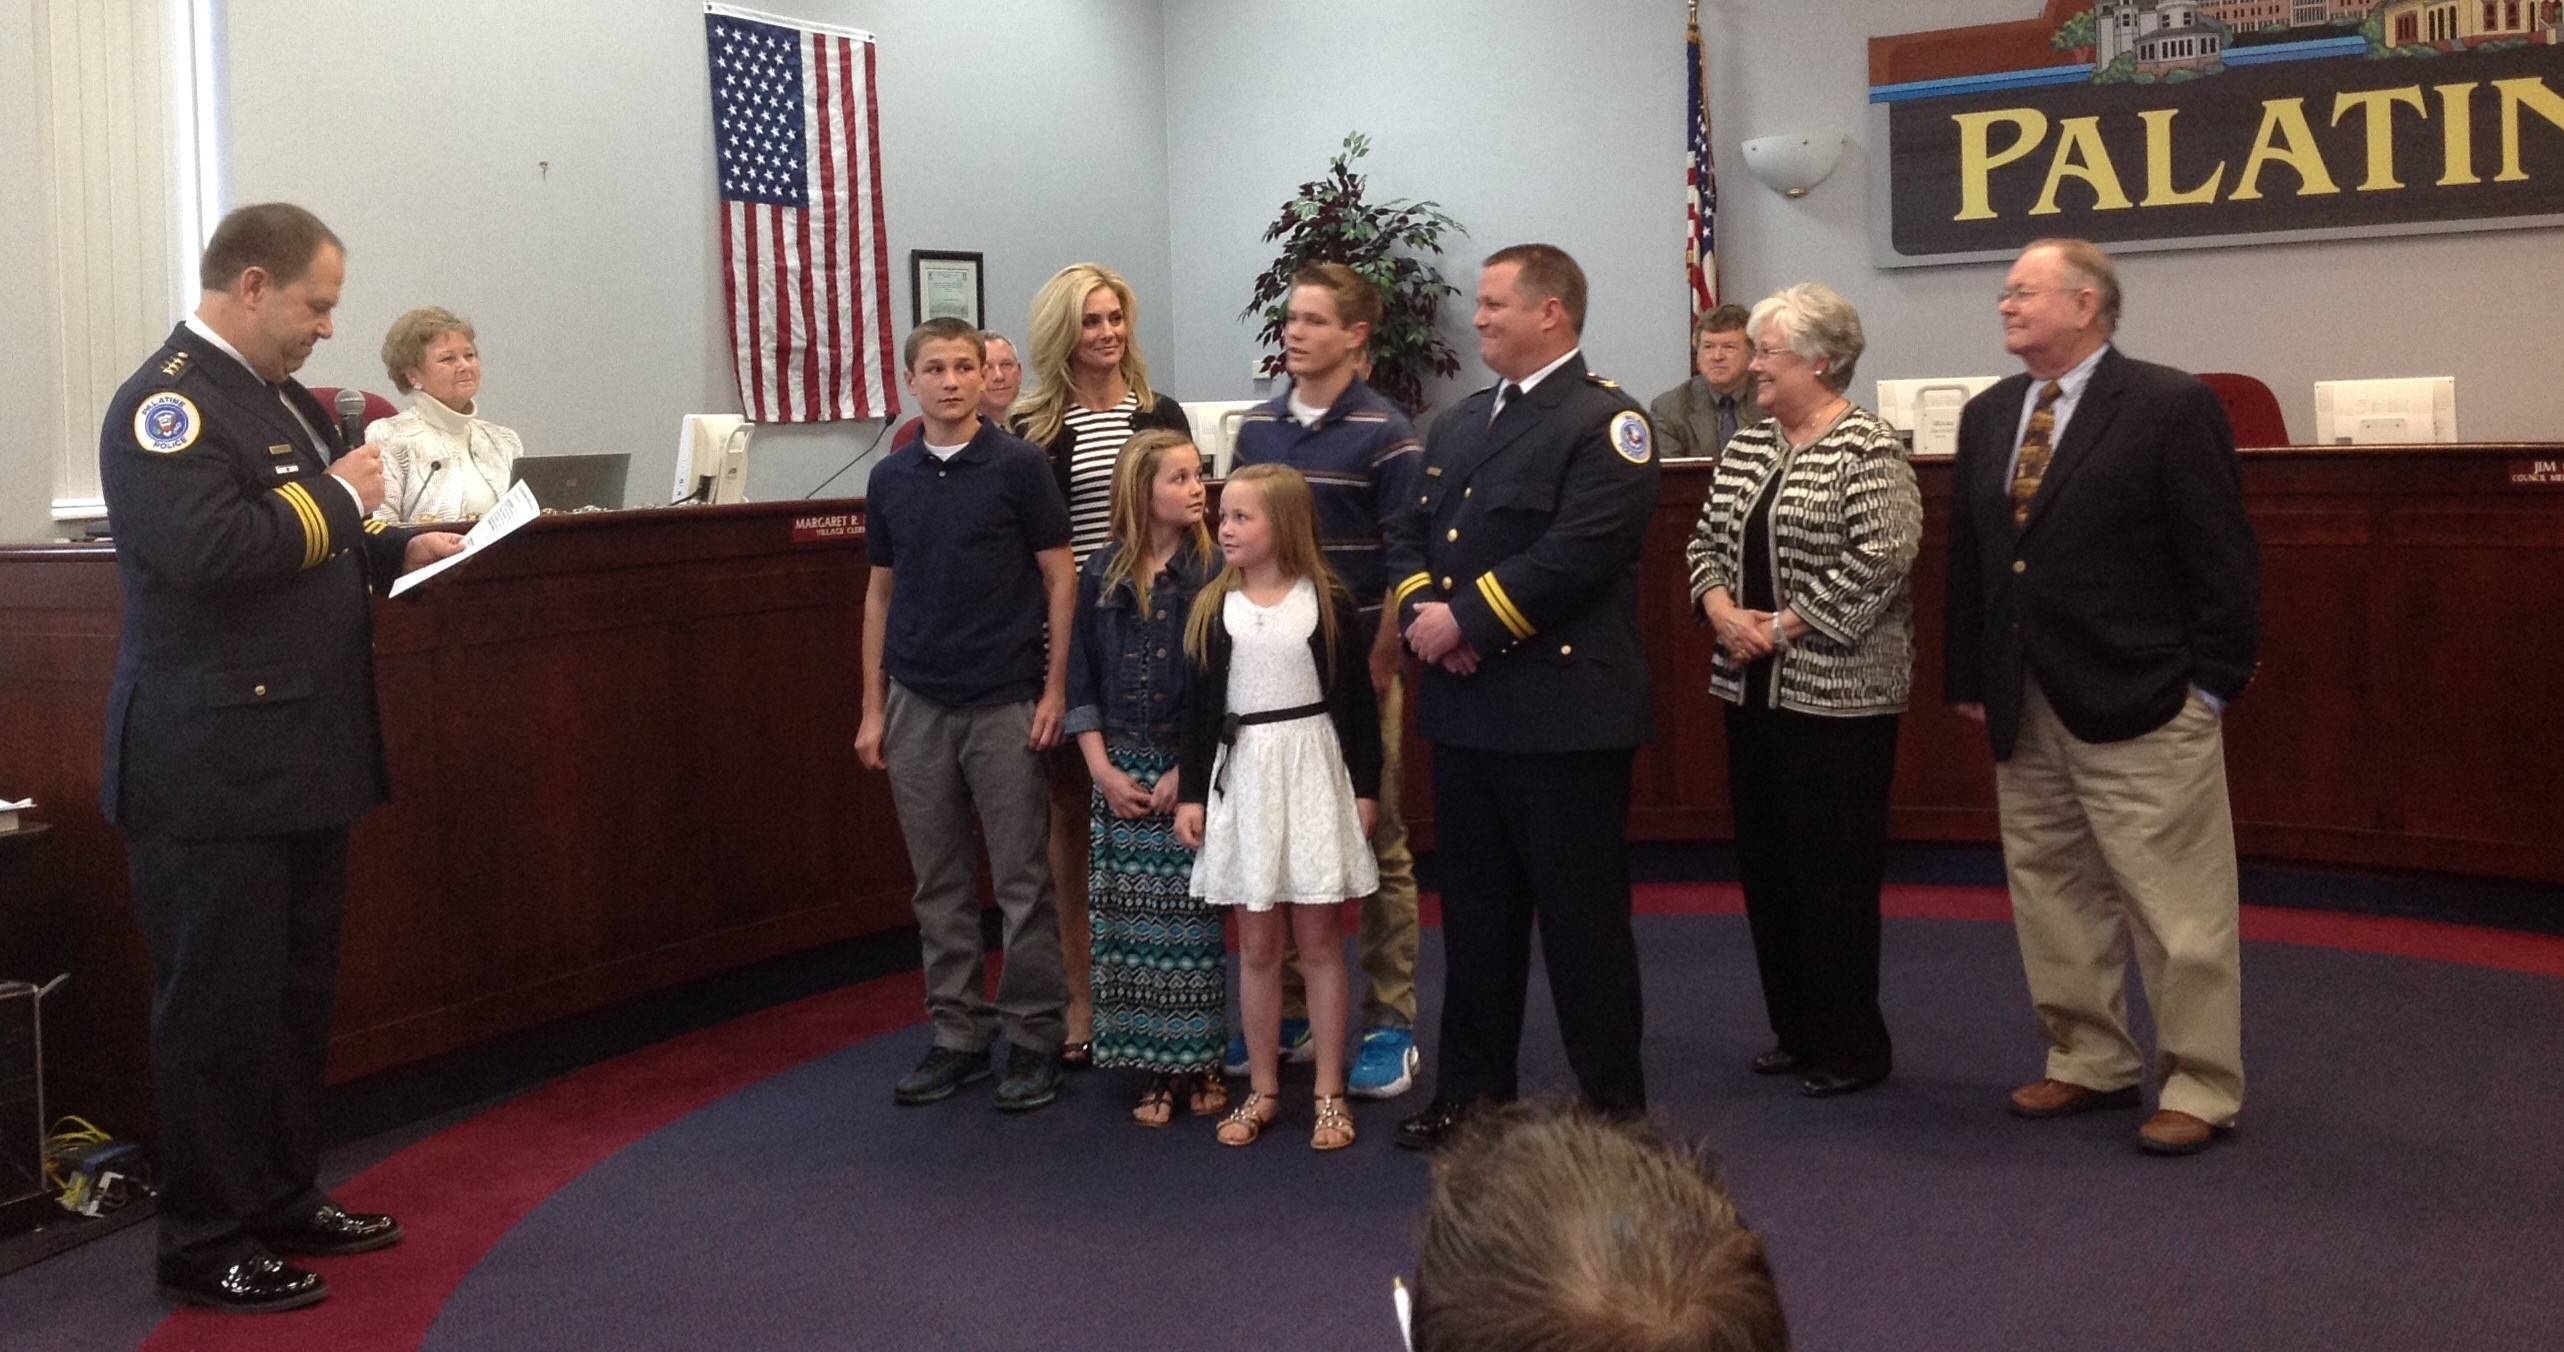 Palatine Police Chief Alan Stoeckel, left, pauses while speaking about Dave Daigle, center, who was promoted to deputy chief of field operations in a ceremony during the Palatine village council's meeting Monday night. Daigle is surrounded by his wife, Maria Daigle, left, his parents, Carol and David Daigle, and his four children.